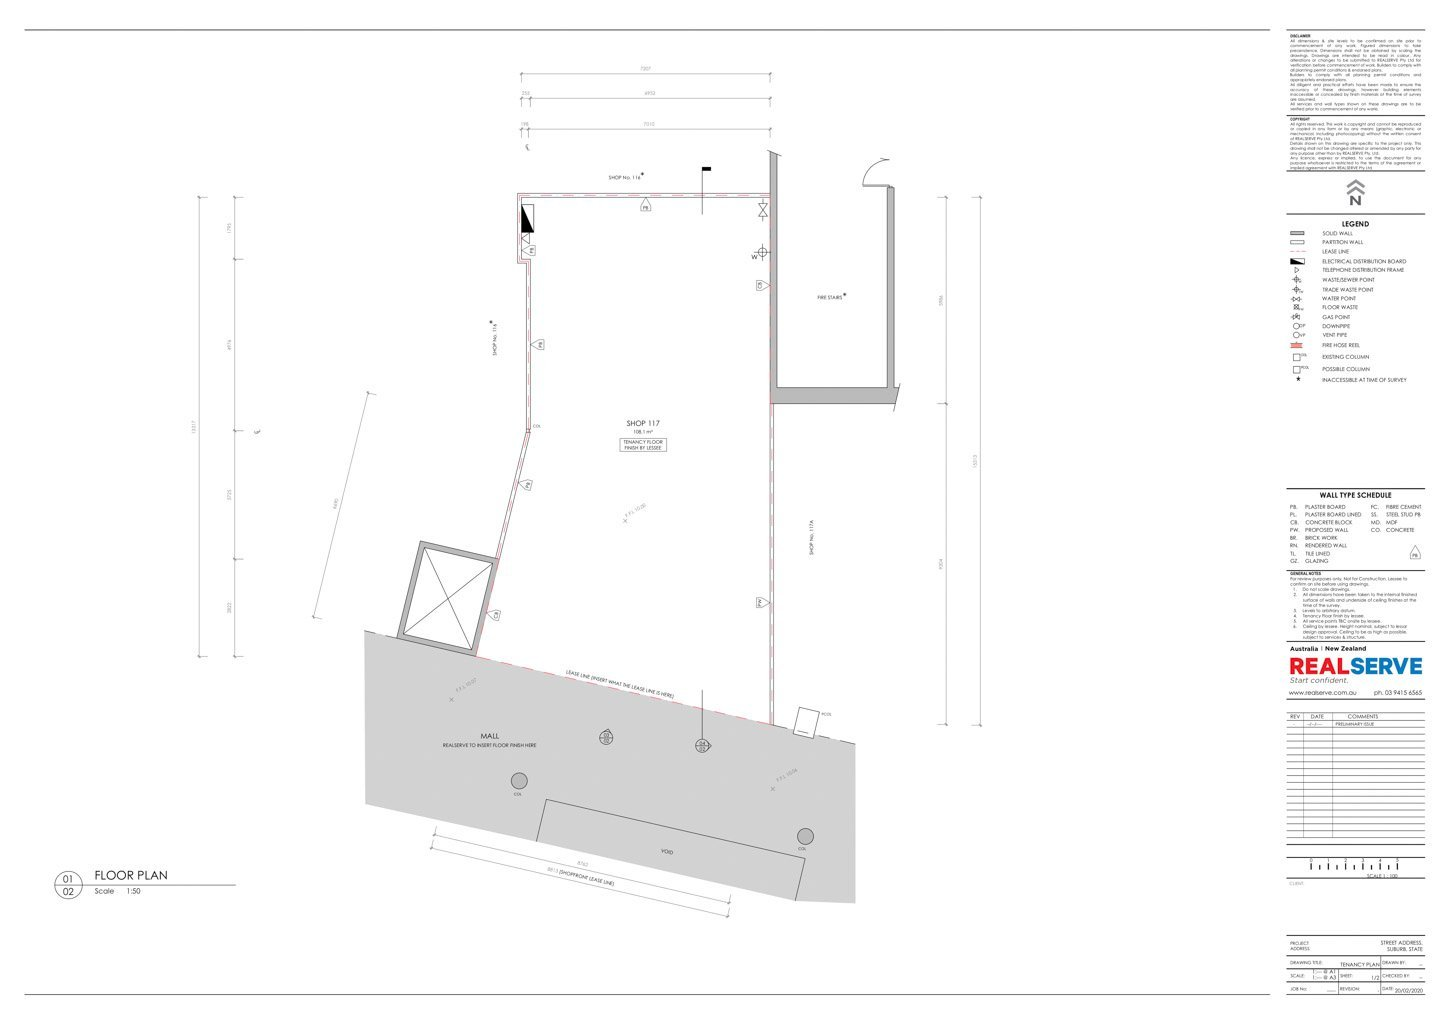 REALSERVE GENERAL TENANCY PLAN WITH FLOOR PLAN SAMPLE